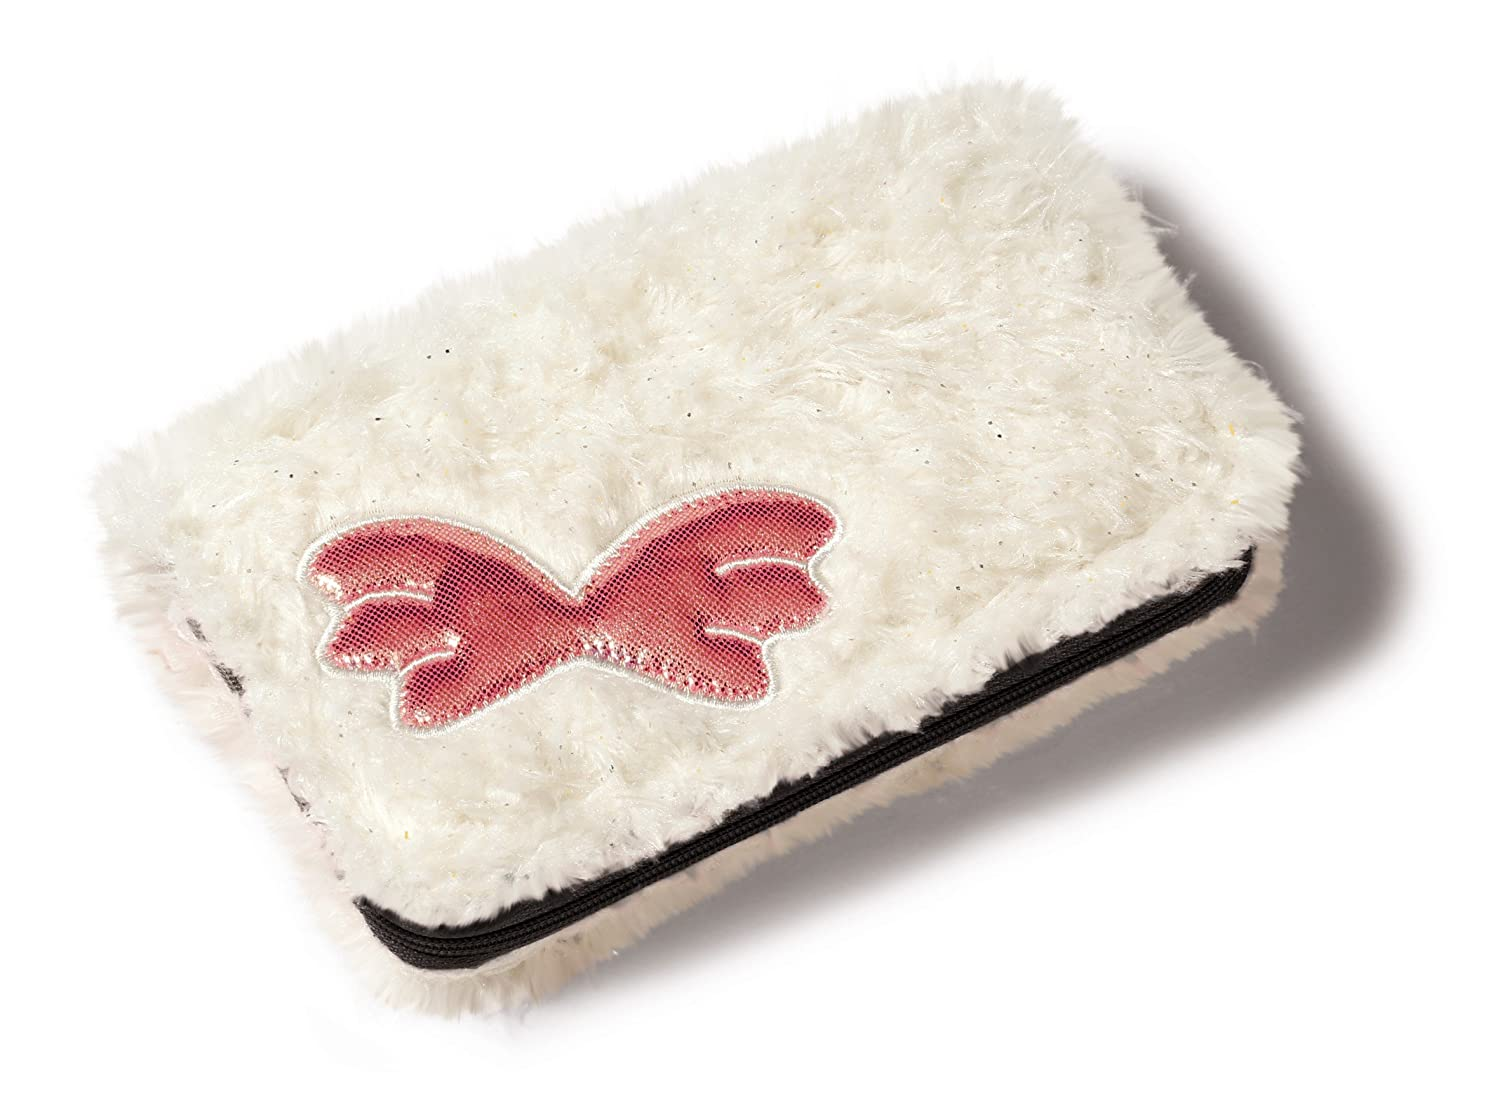 Amazon.com: Jolly Mäh 39852 16 x 9.5 cm Wallet with Wings Plush Toy by Jolly Mäh: Toys & Games